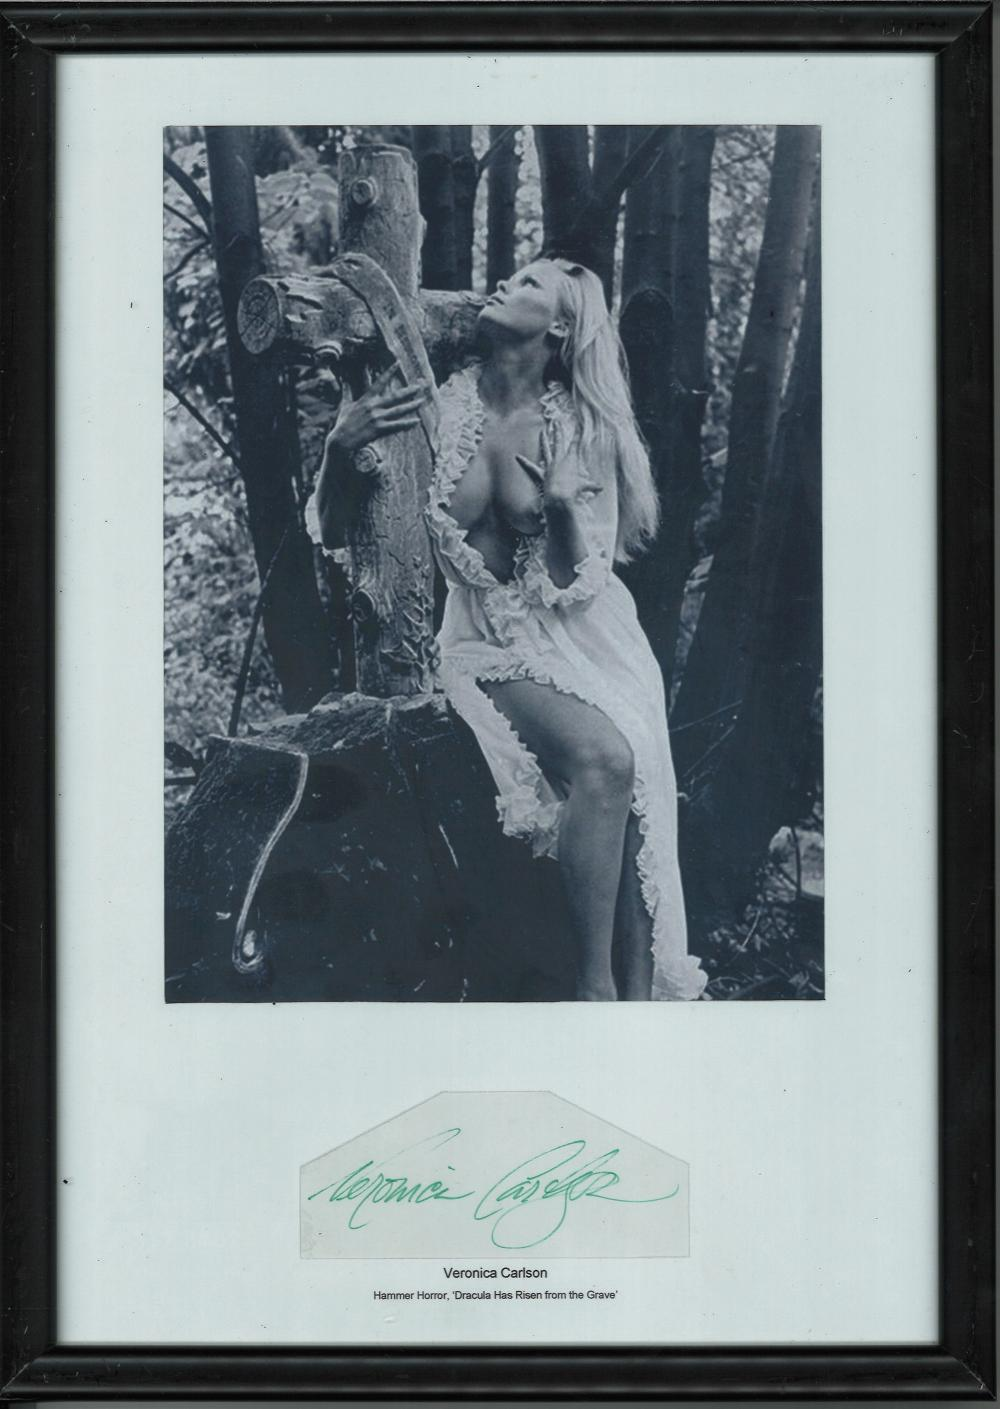 Veronica Carlson signed Black/white portrait photograph mounted in a black frame featuring Peter